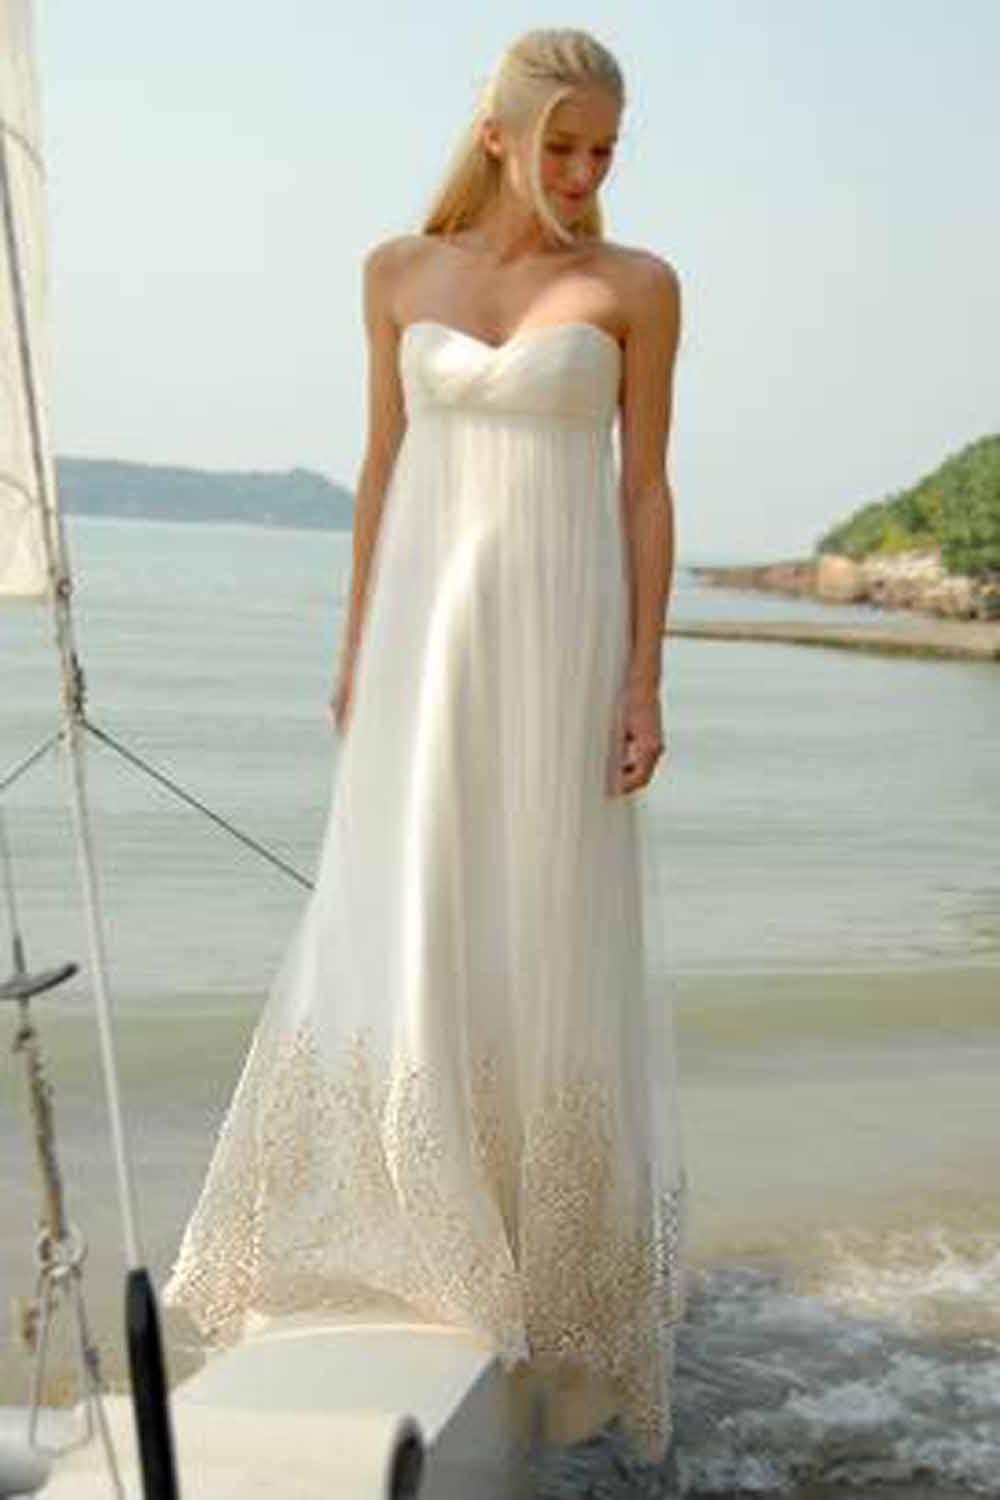 Hilary 39 s blog casual beach wedding gowns 4 for Casual beach wedding dress